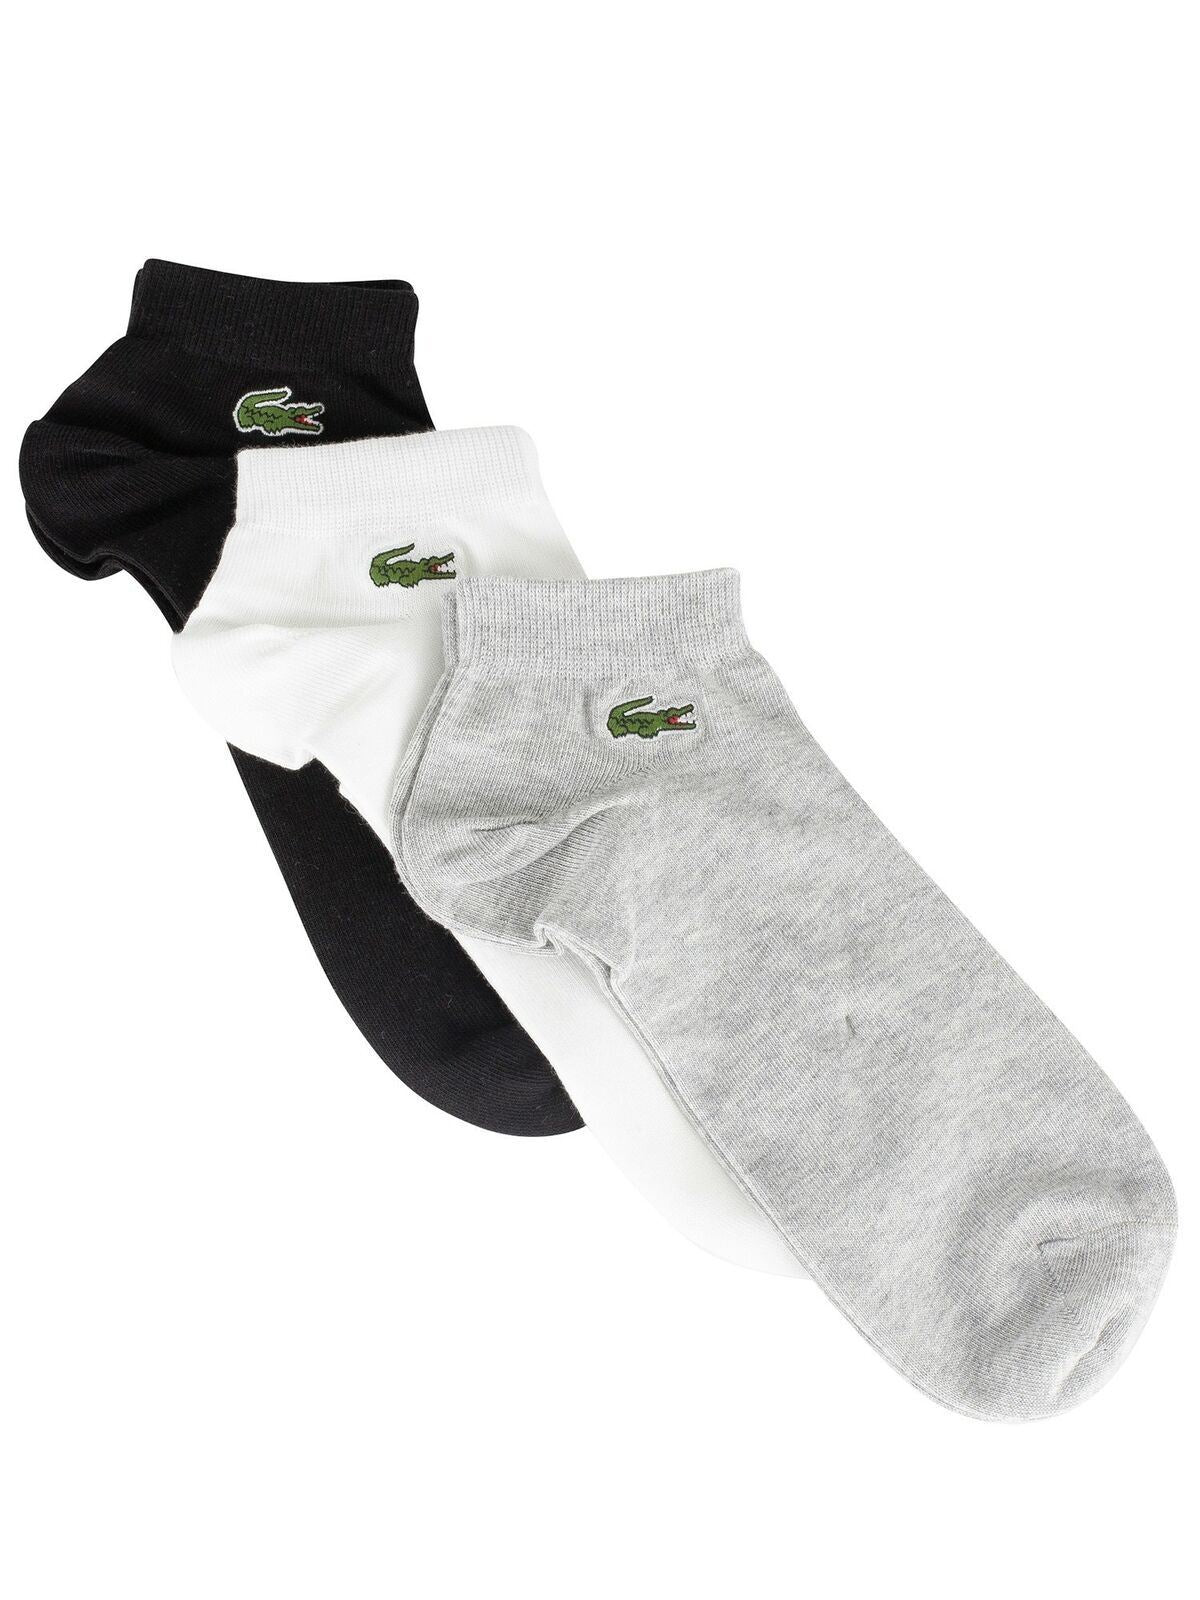 Lacoste Mens Low Cut Ankle Fashion Sport Socks Black Grey & White